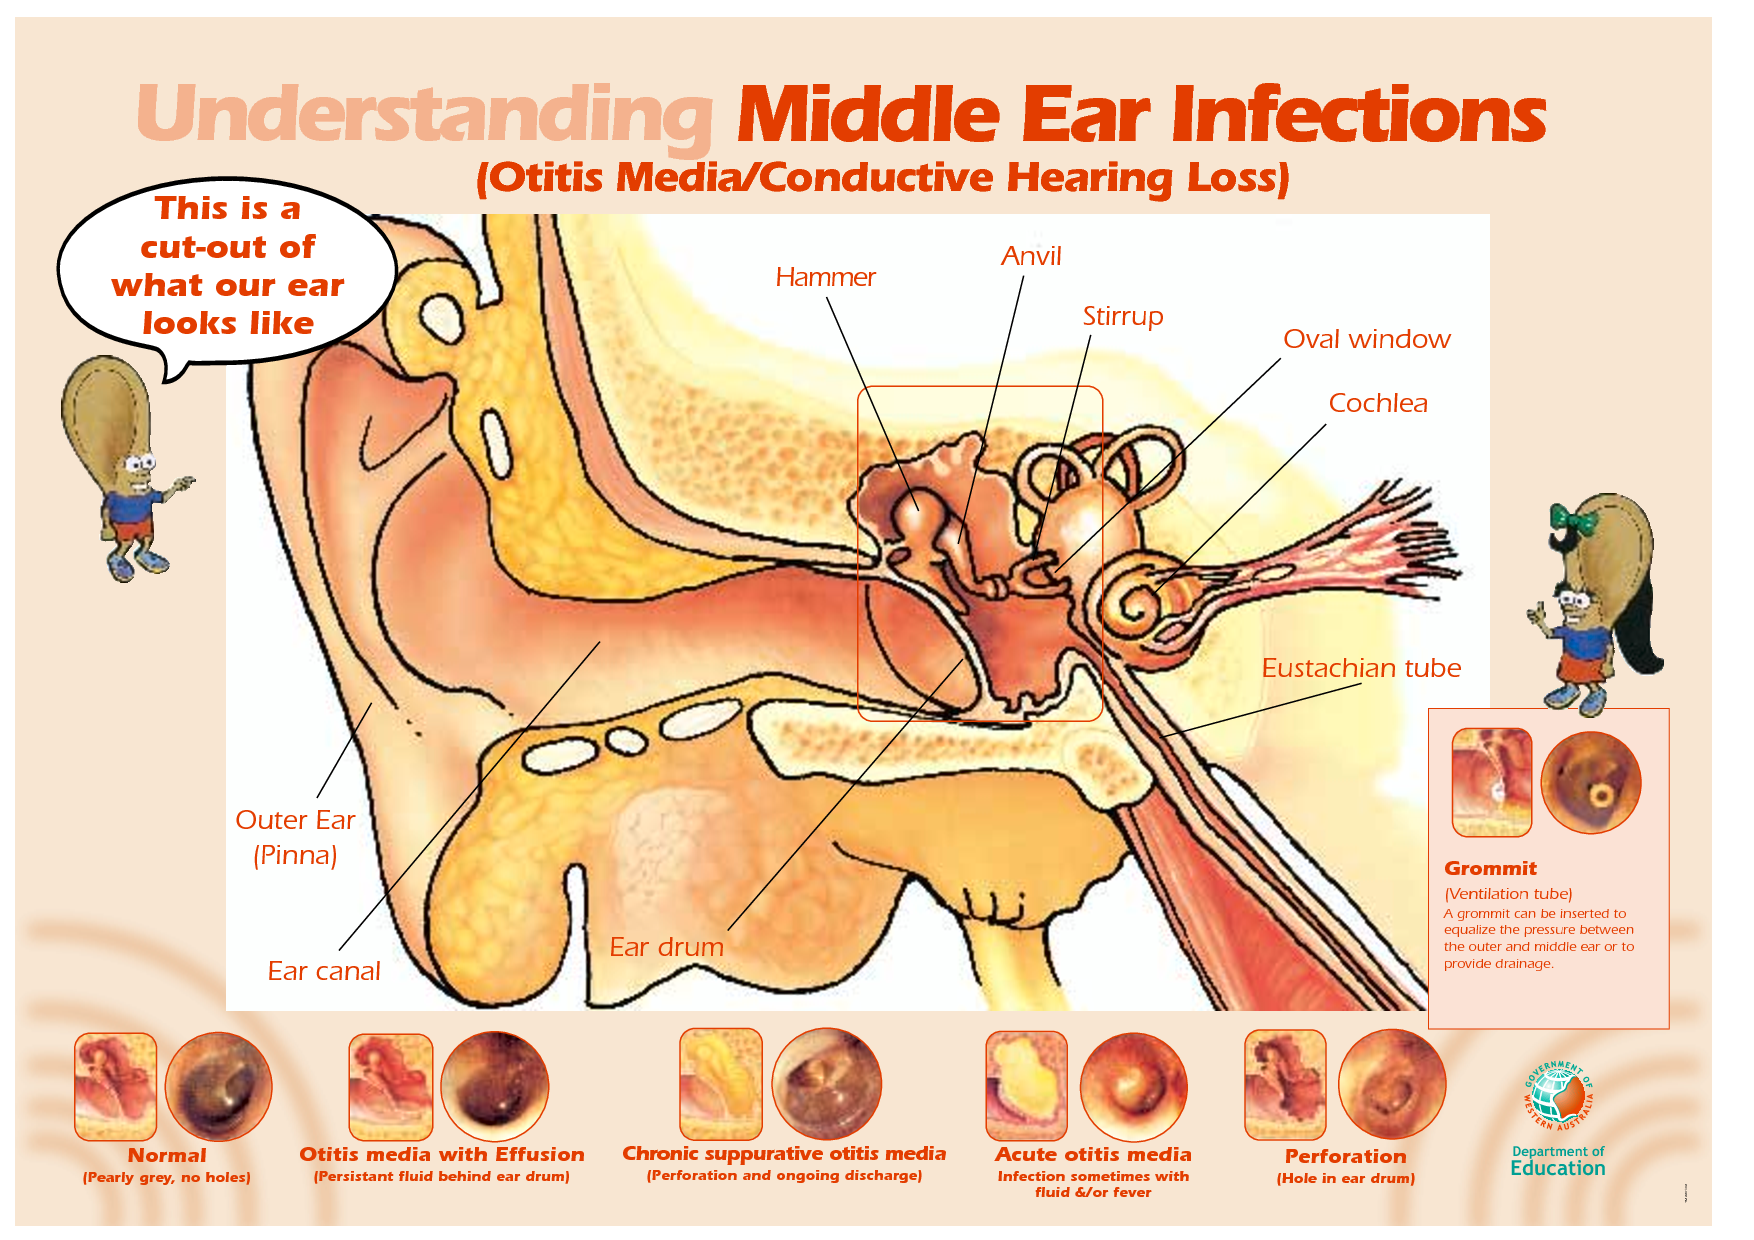 ☤ MD ☞☆☆☆ Middle ear infections.